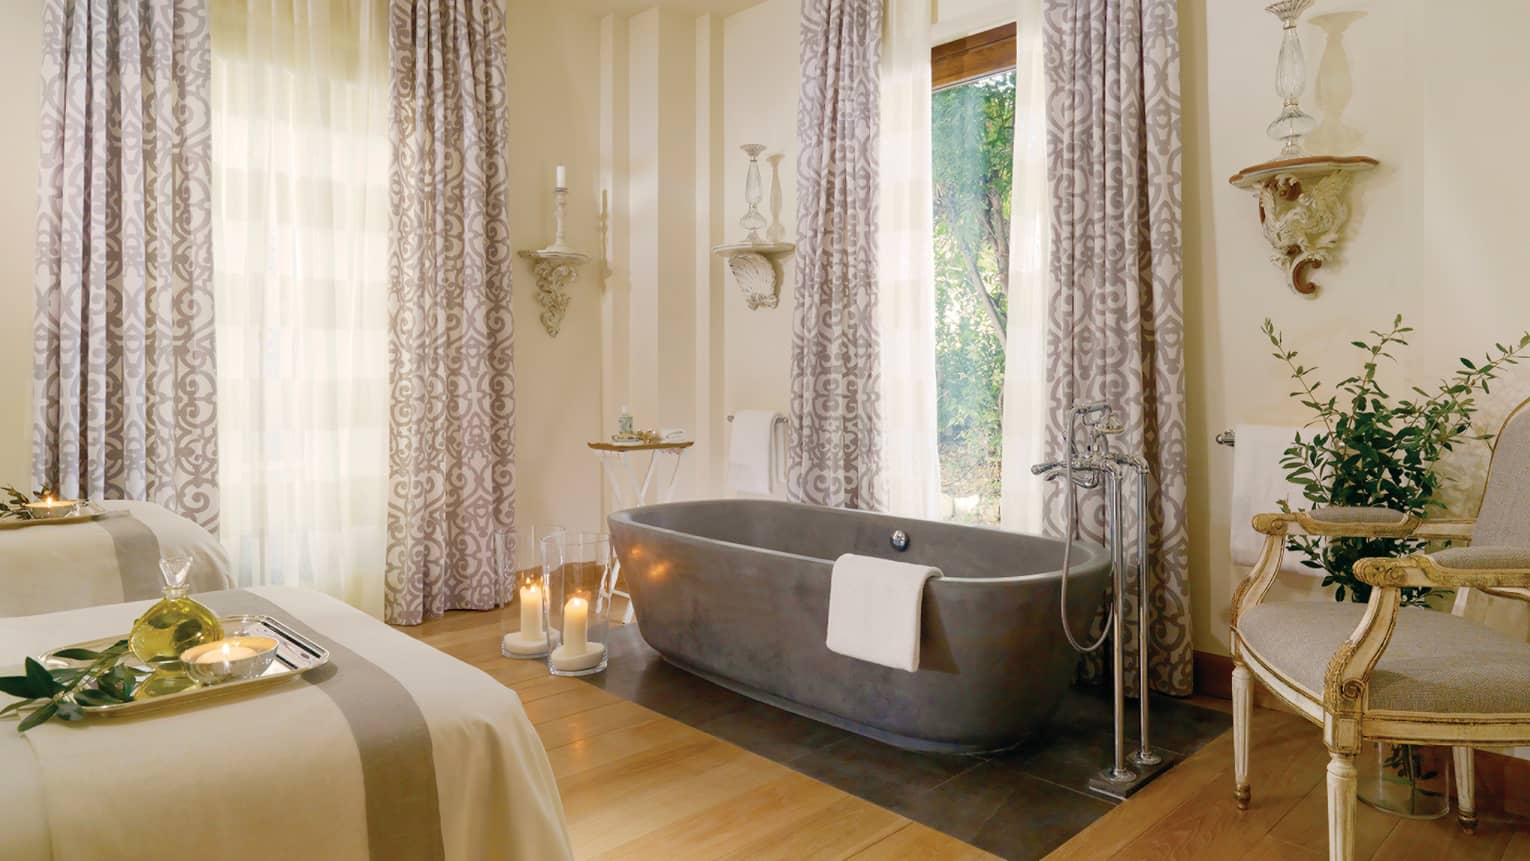 Spa couples massage beds, candles on floor by free-standing tub under tall windows